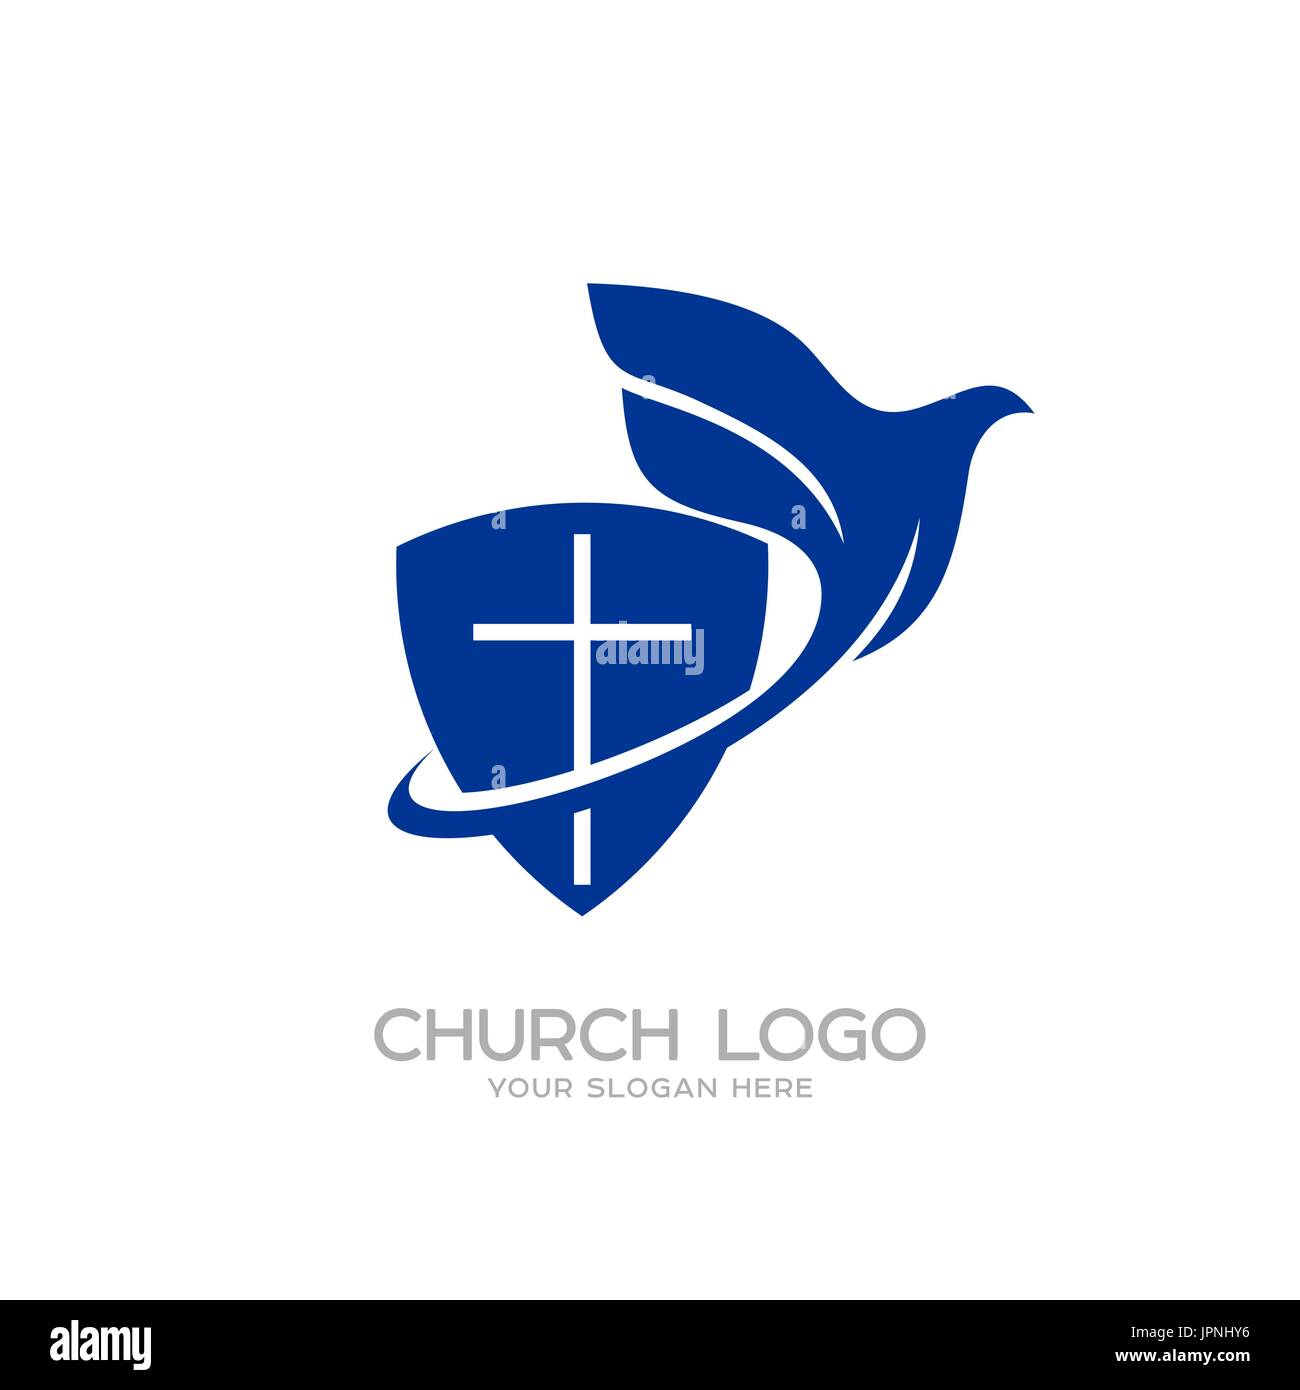 Christian Symbols Faith Hope Love Stock Photos Christian Symbols